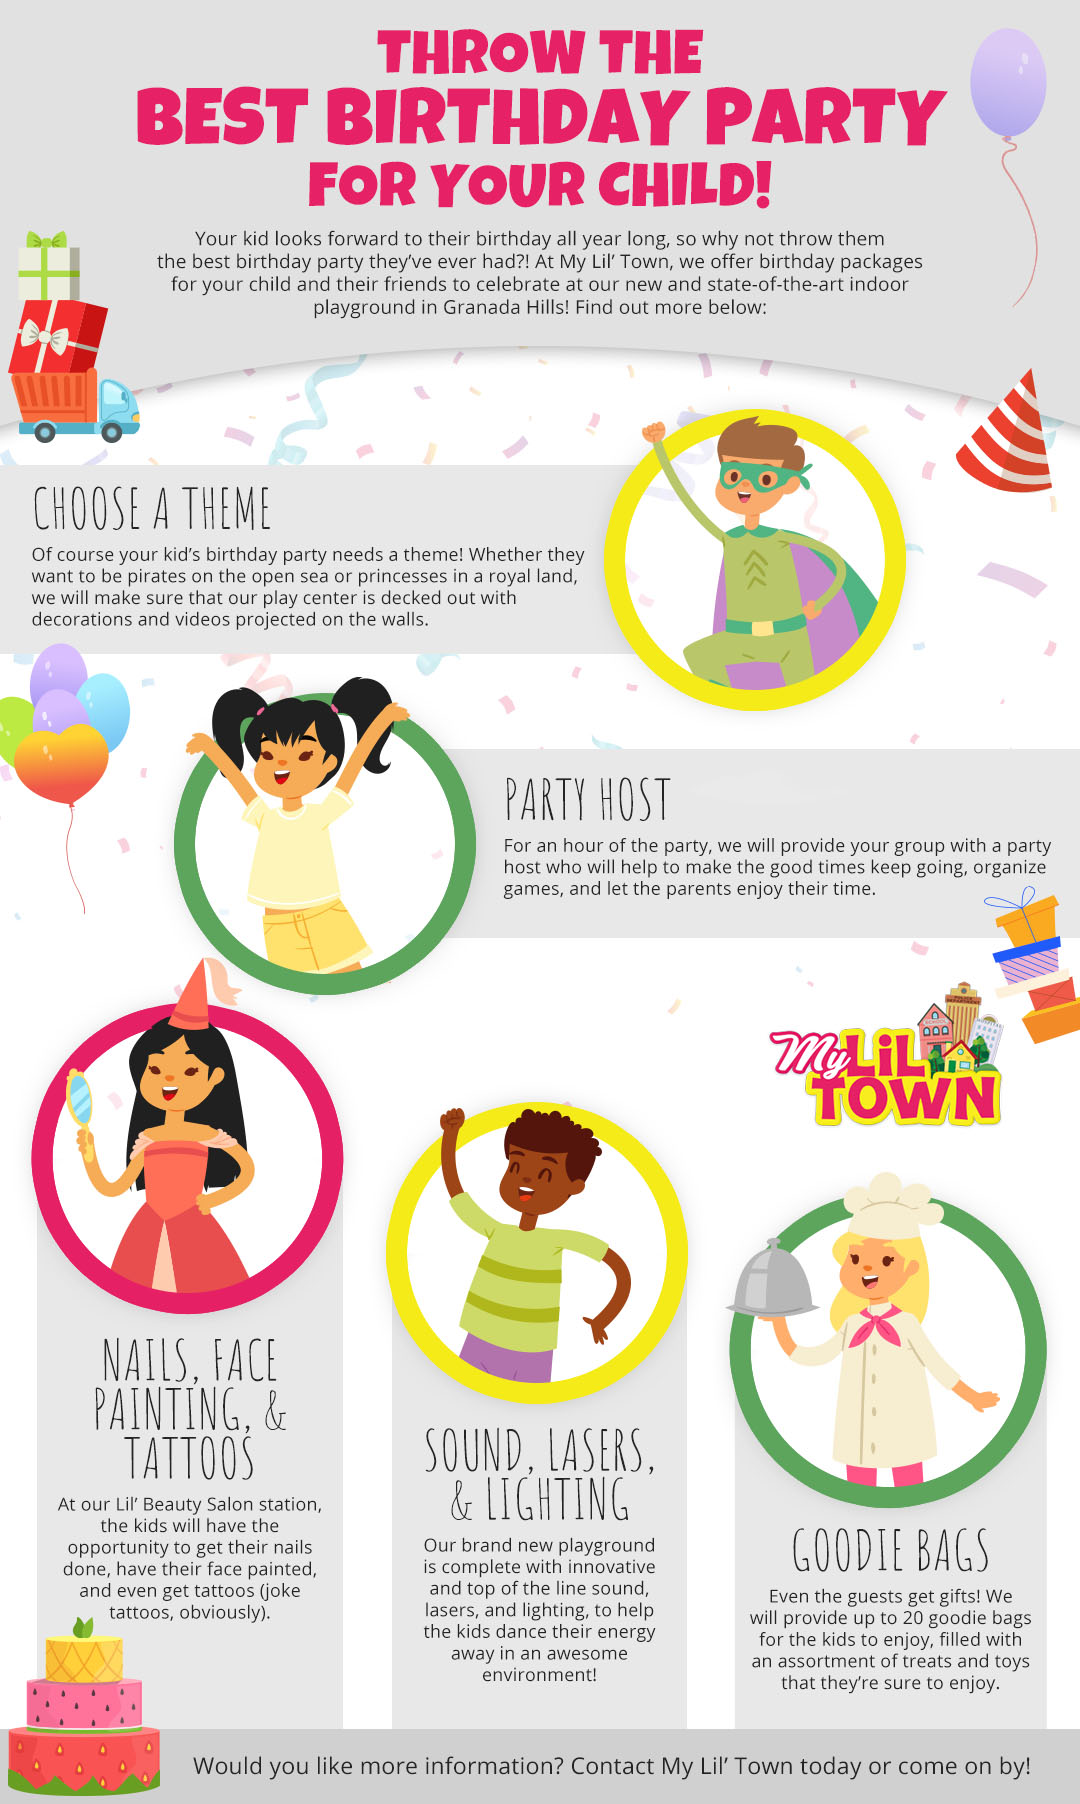 Birthday Party Places for Kids in Granada Hills - The